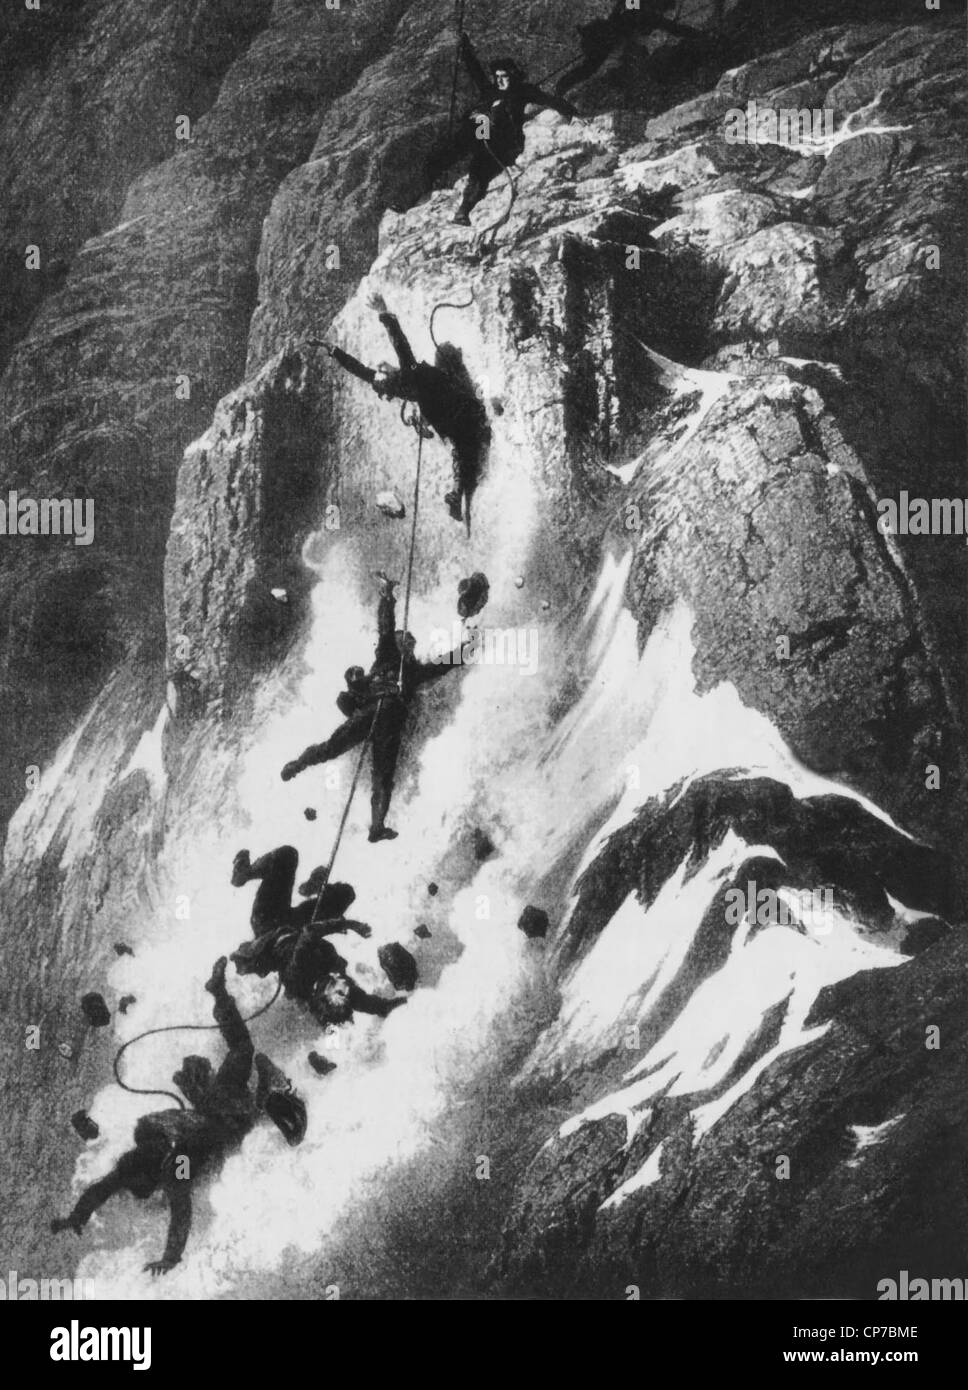 Disaster strikes just after the first ascent of the Matterhorn, drawn by artist Gustave Doré in 1865. - Stock Image